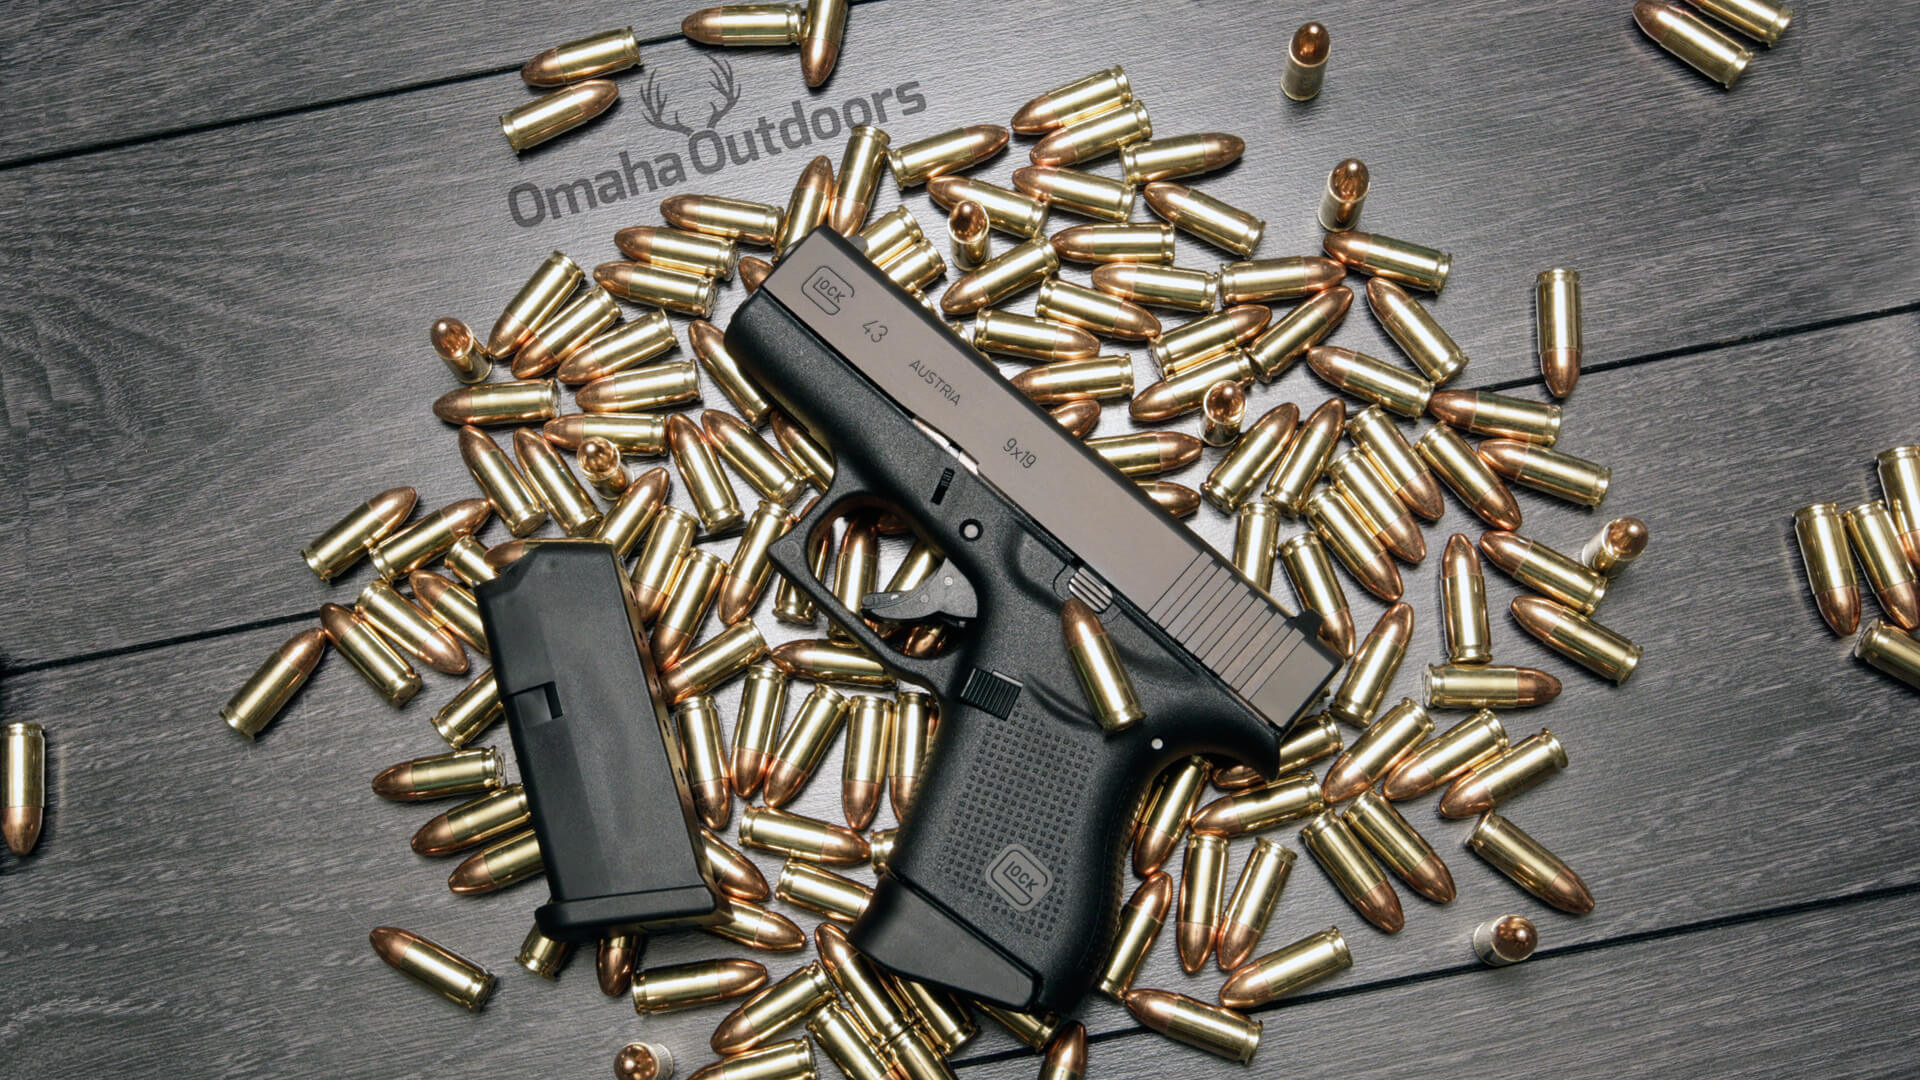 wallpaper 9mm Pistol Wallpaper Download  blogspotcom